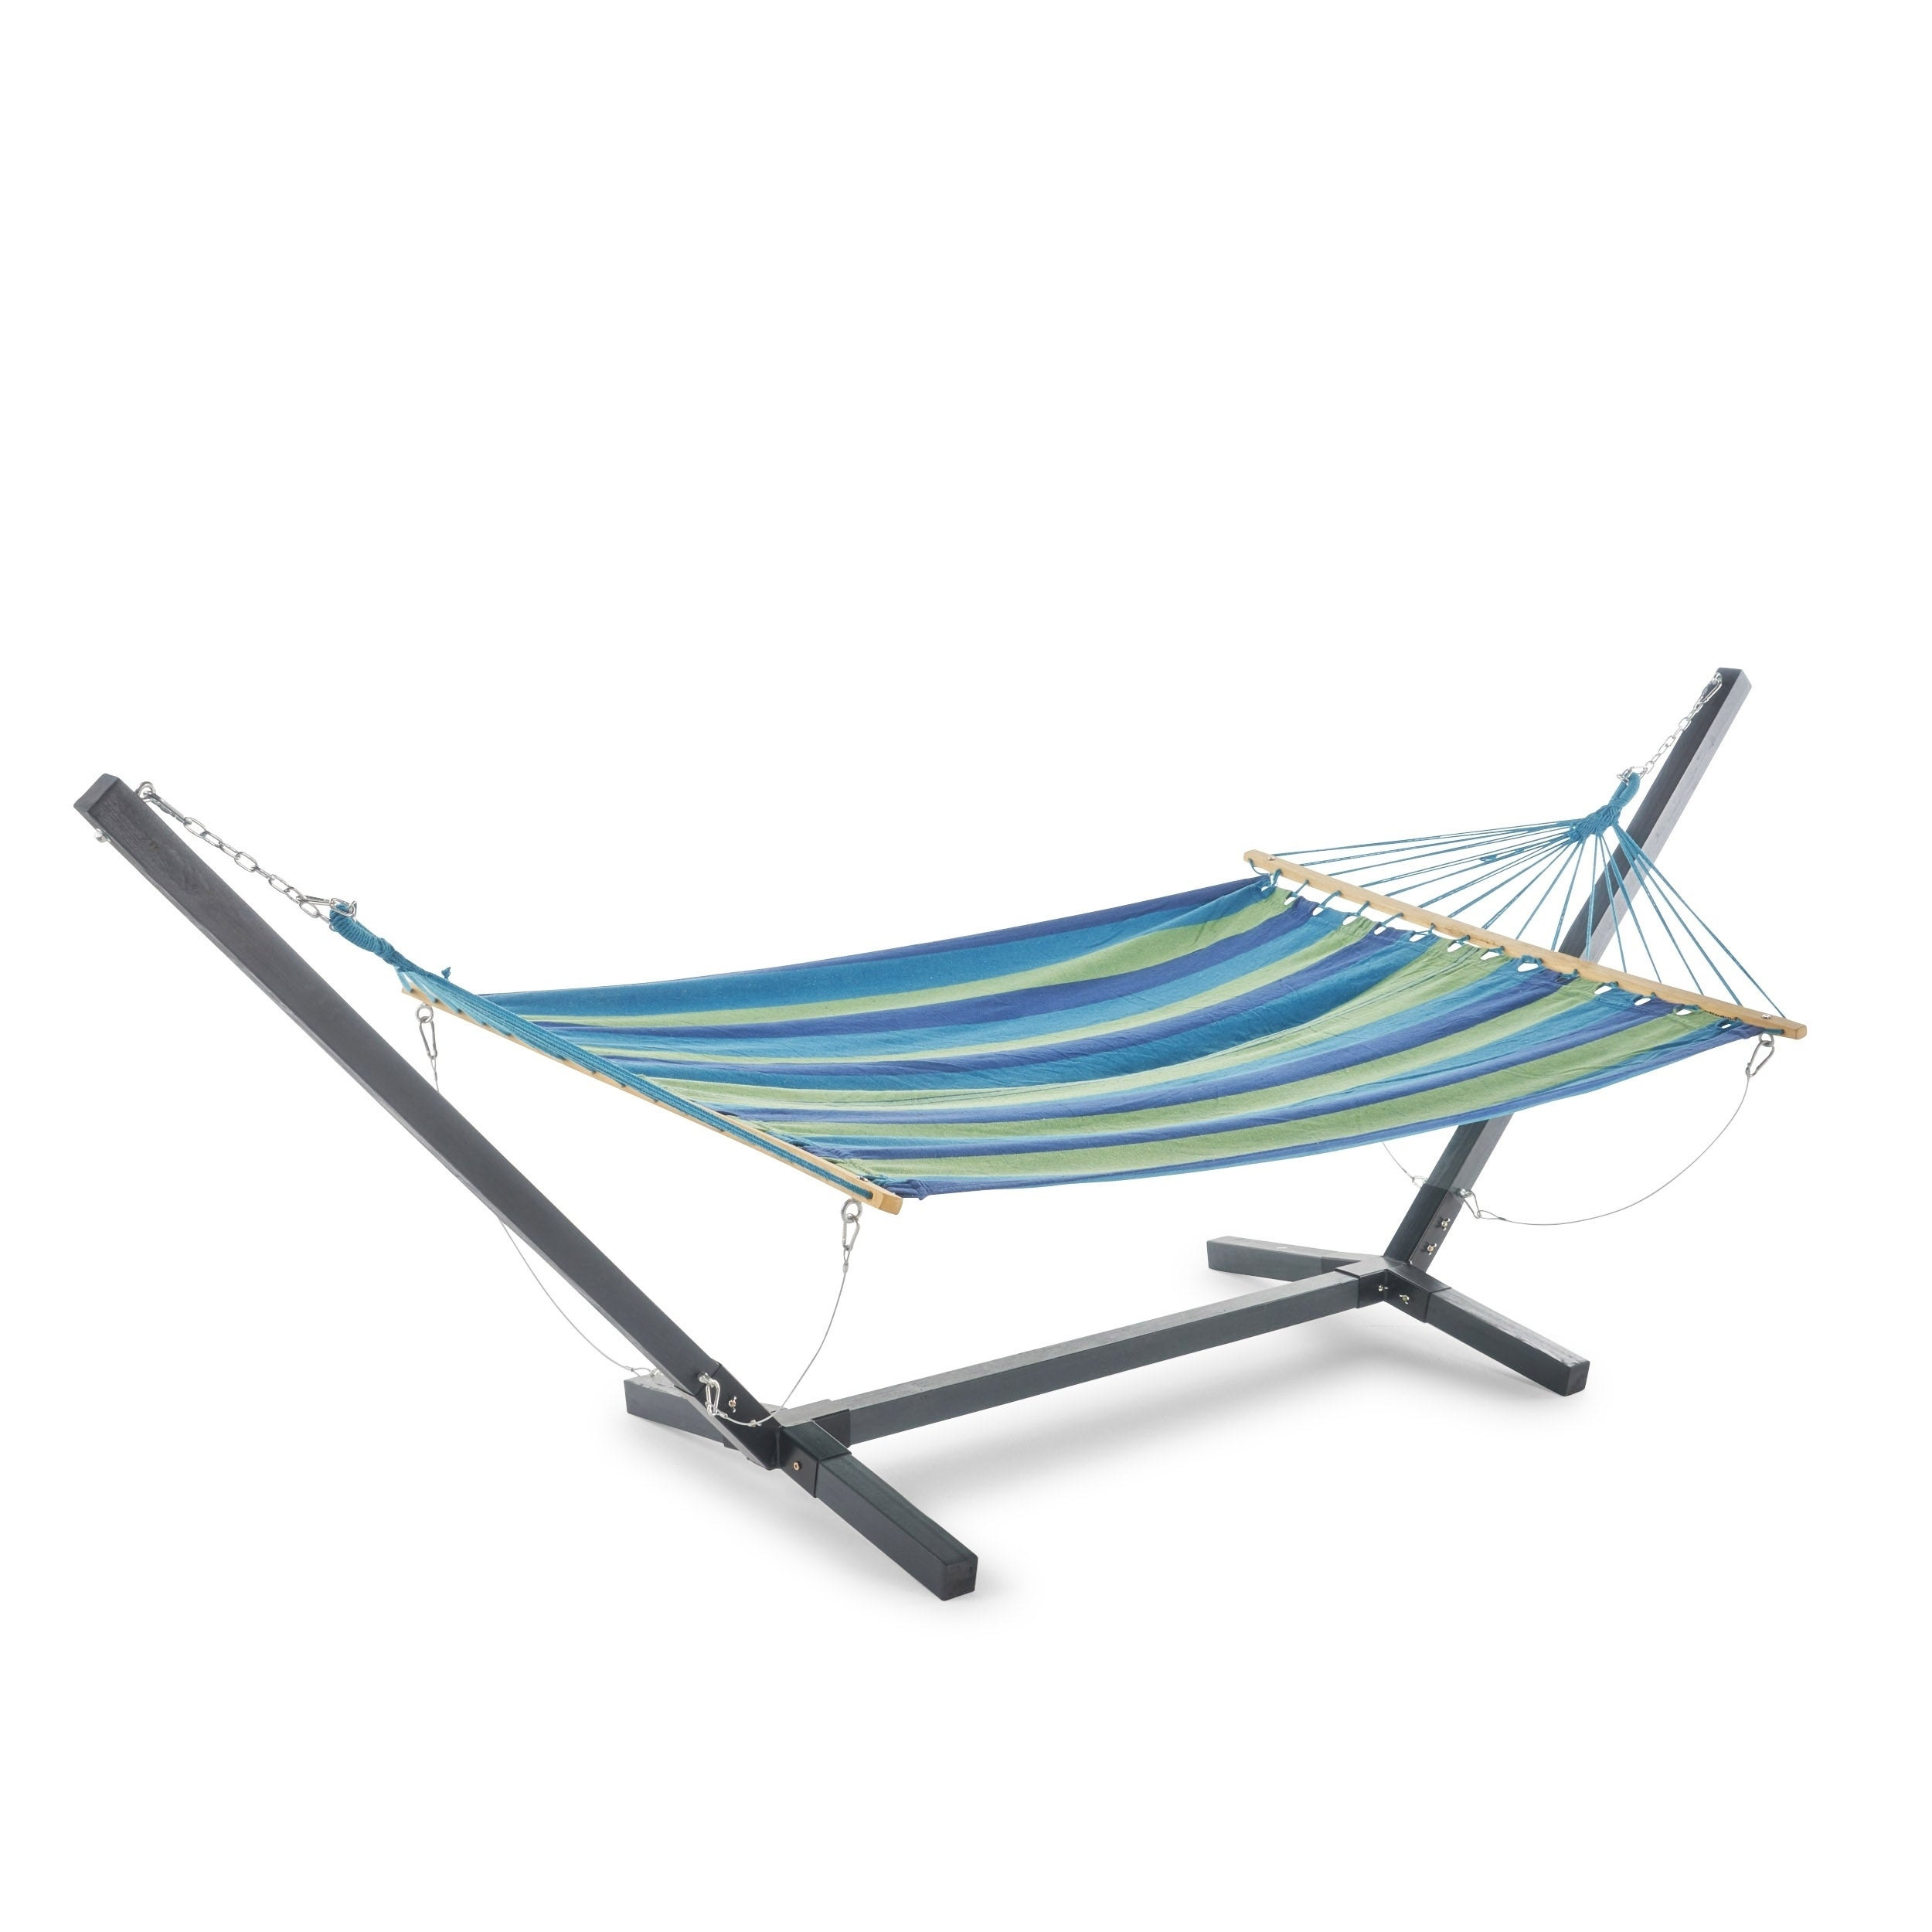 Swell Aspen Outdoor Water Resistant Hammock With Grey Larch Wood Frame By Christopher Knight Home N A Gmtry Best Dining Table And Chair Ideas Images Gmtryco